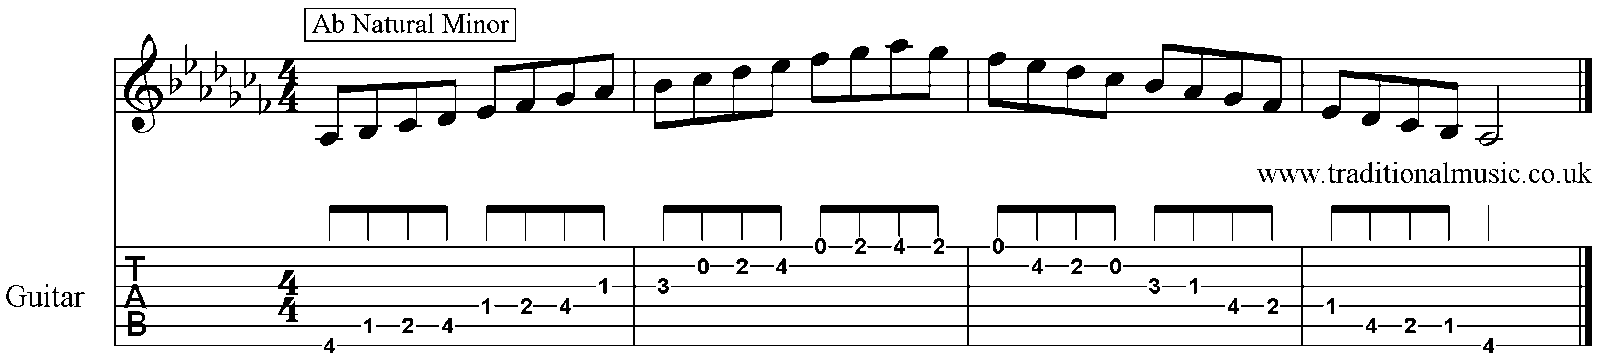 how to play ab minor on guitar